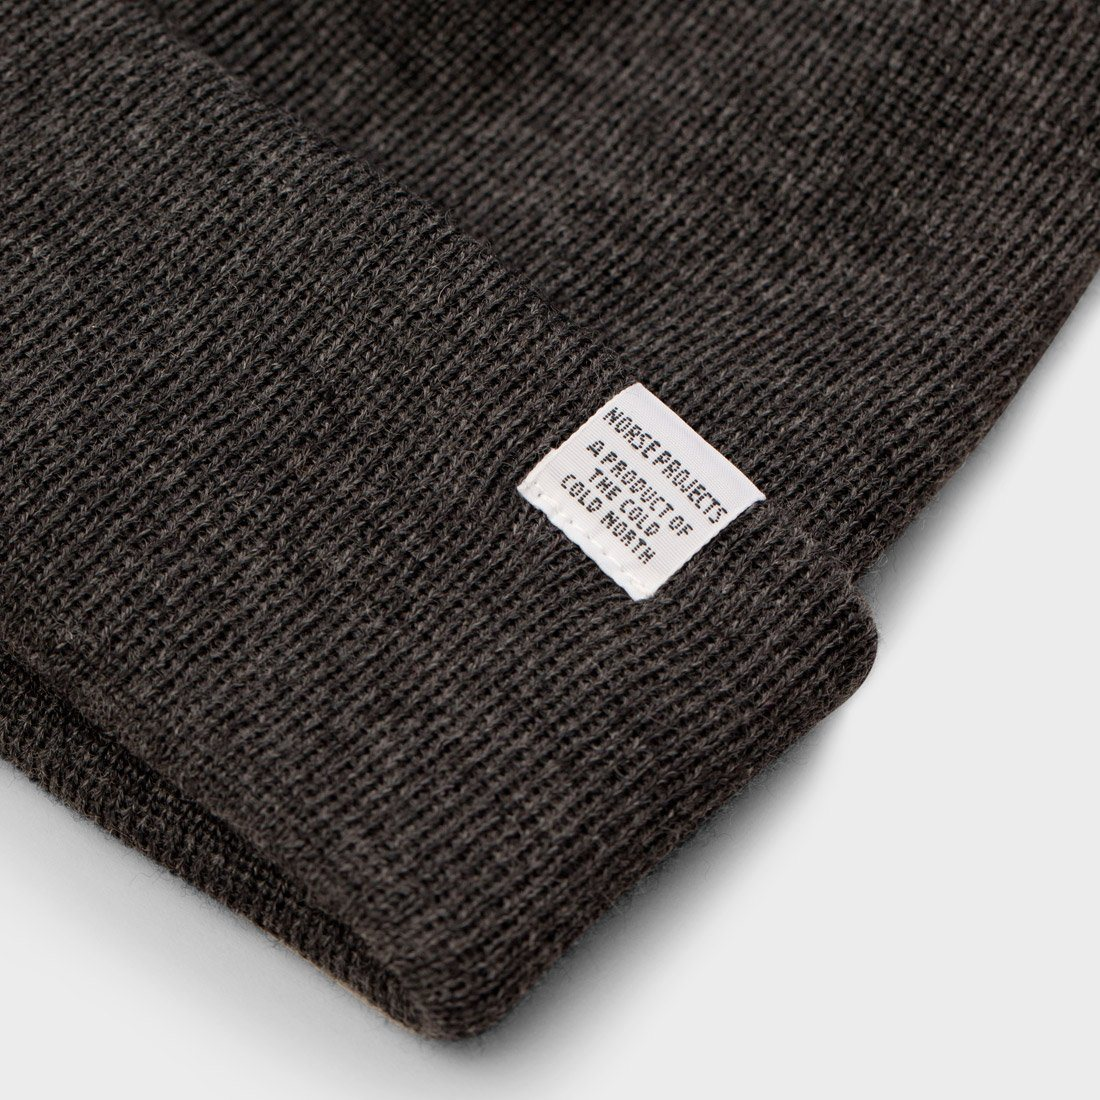 41aee685240 ... product  Norse Projects Top Beanie Charcoal Melange